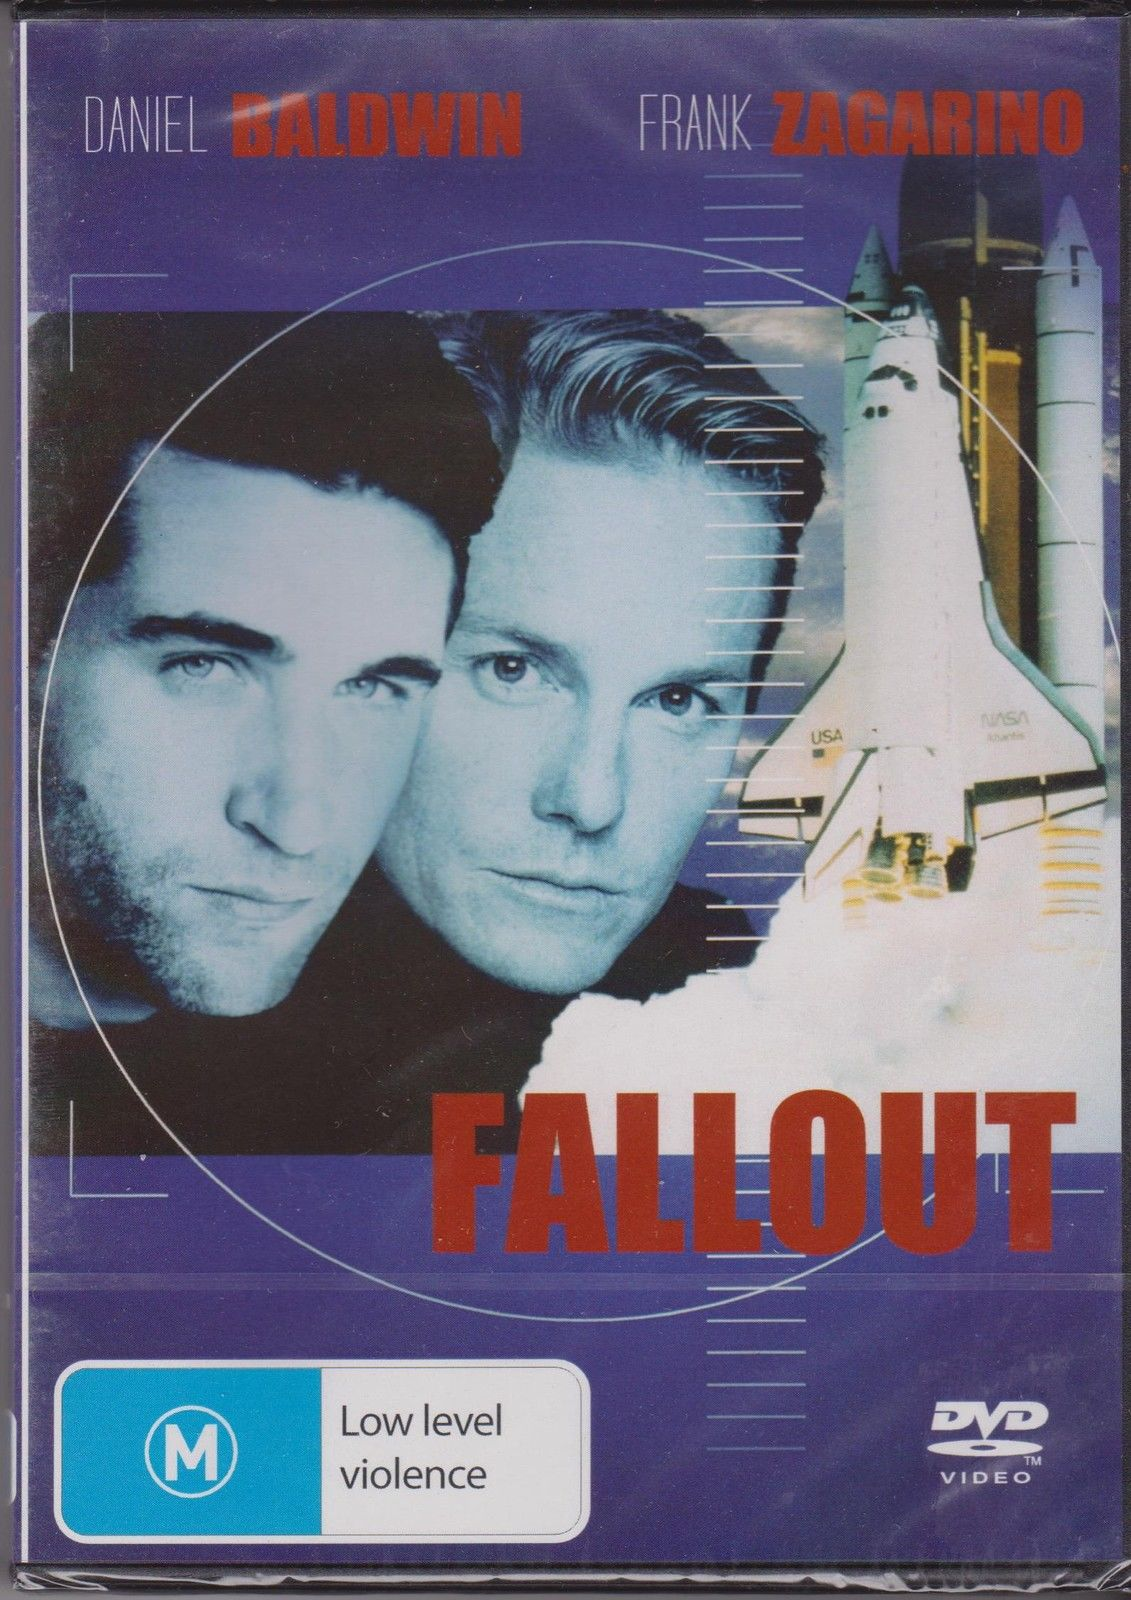 DVD - Fallout [1995] (Preowned)